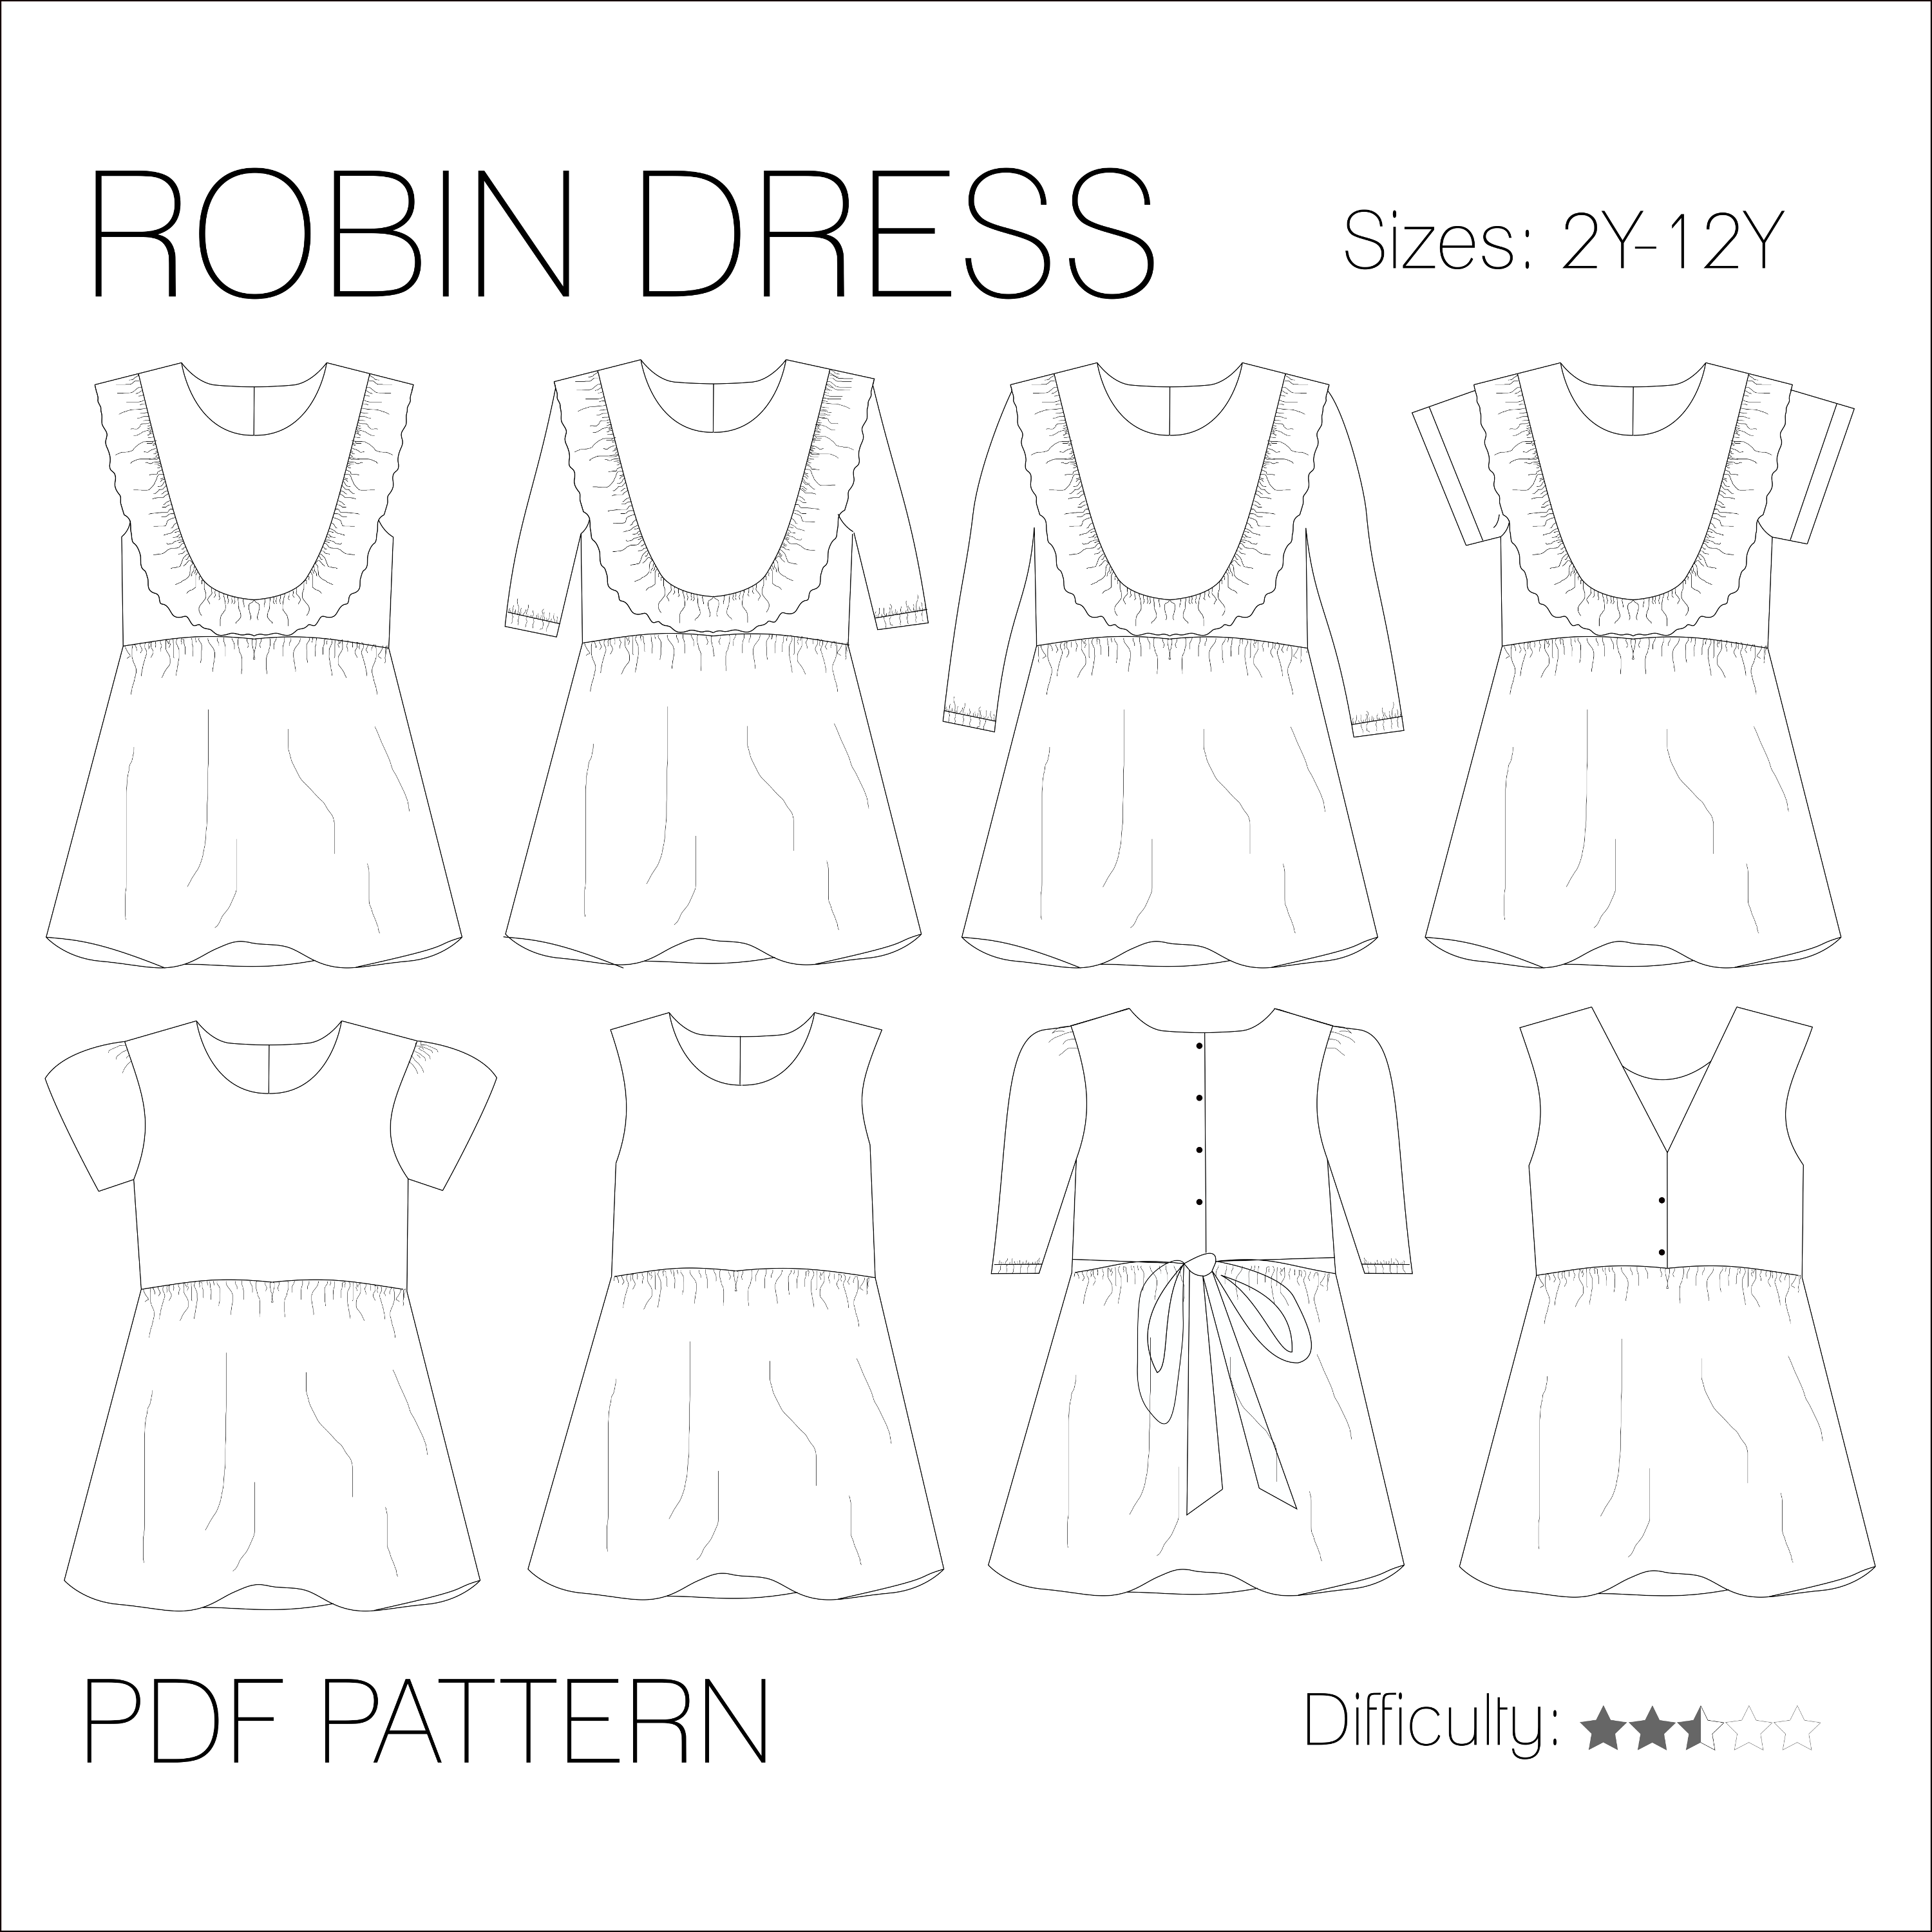 d03eeba9648afd Robin dress - PDF pattern (English) - Iris May